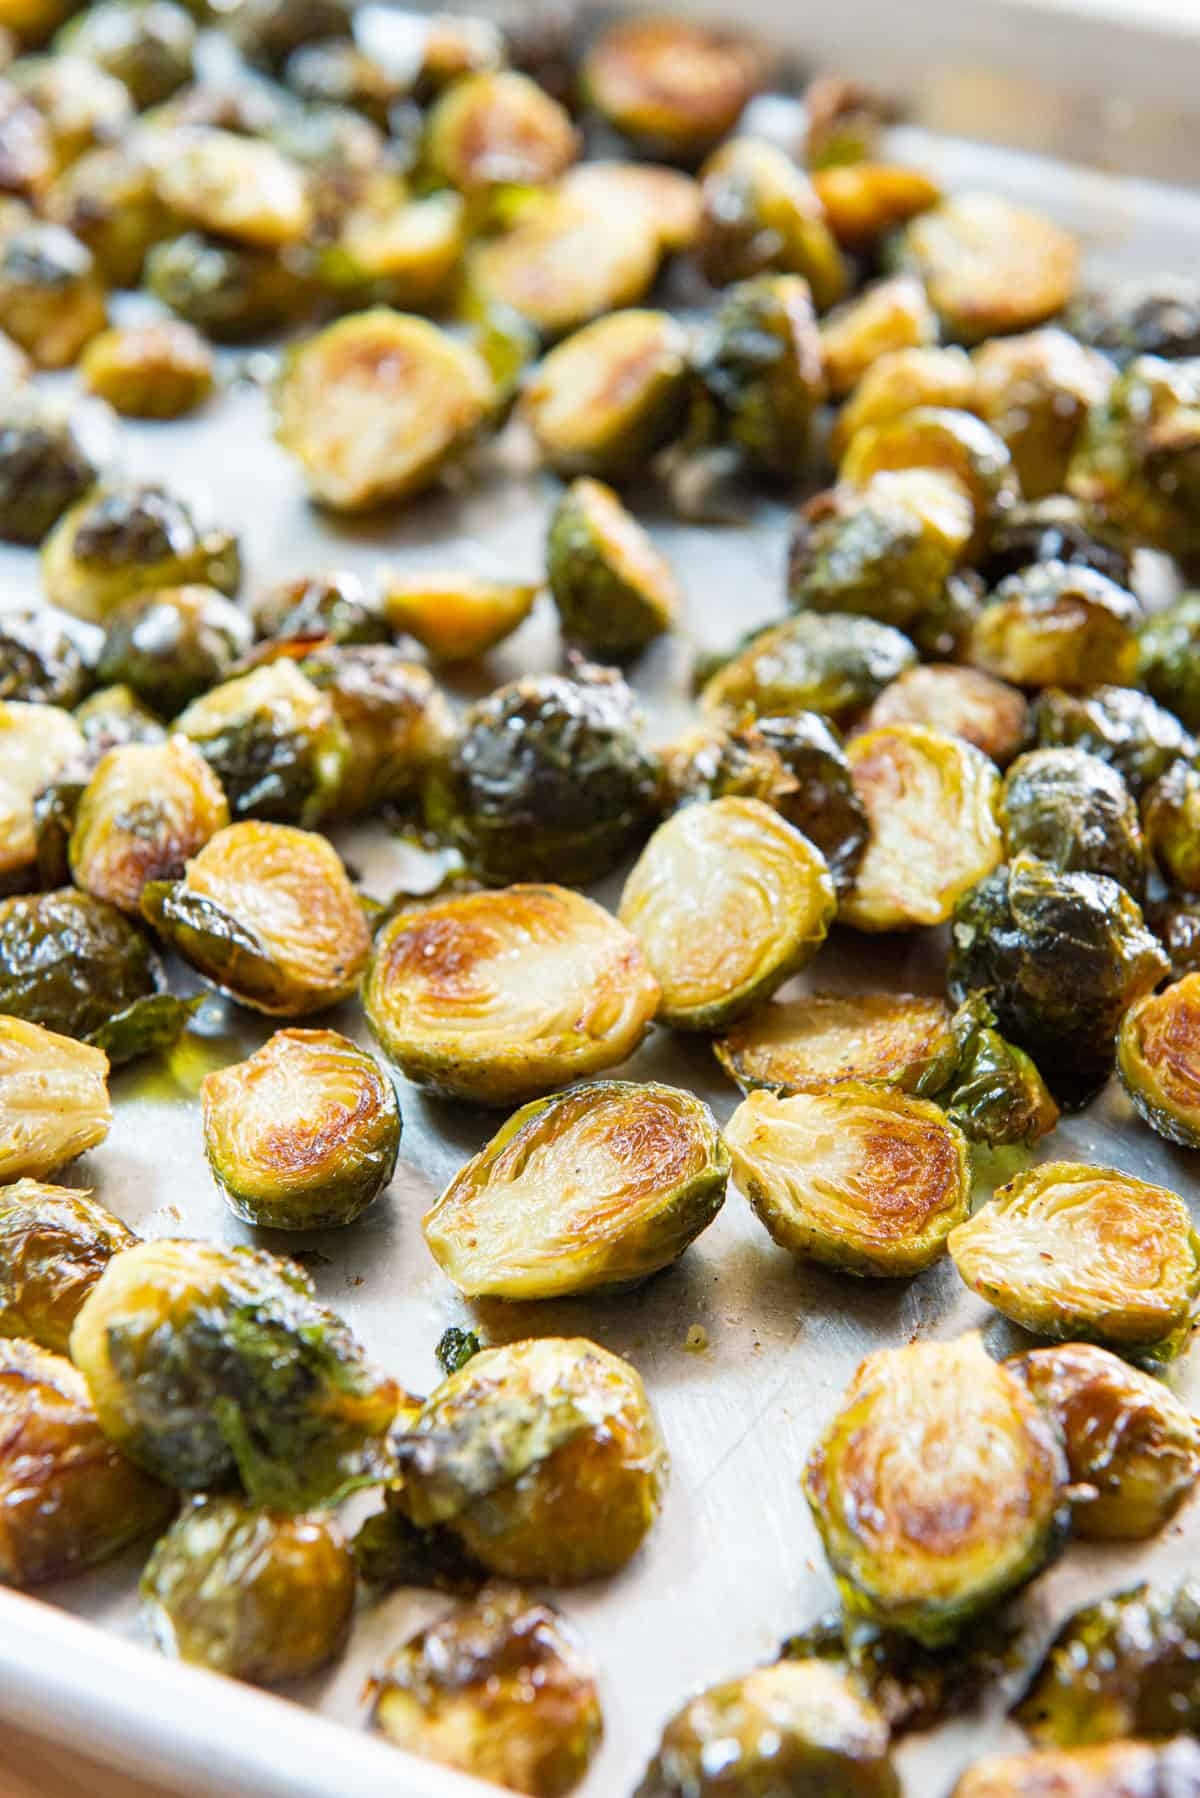 Roasted Brussel Sprouts Recipe Served on a Sheet Pan